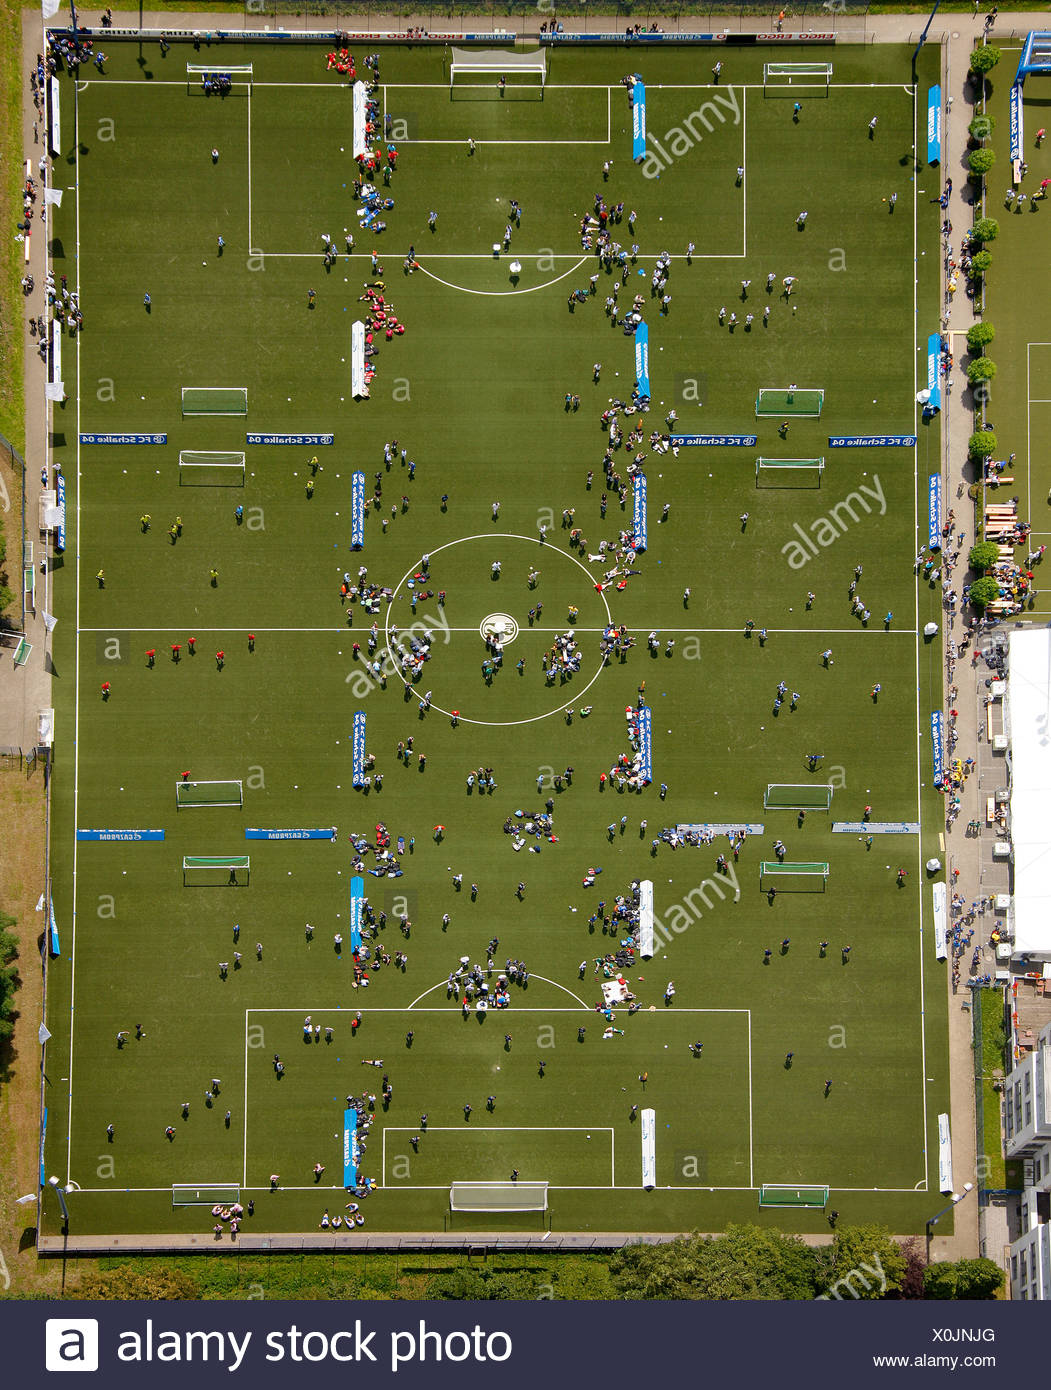 Aerial view, Schalke Arena, S04, football pitches, football tournament, Gelsenkirchen, Ruhr Area, North Rhine-Westphalia - Stock Image